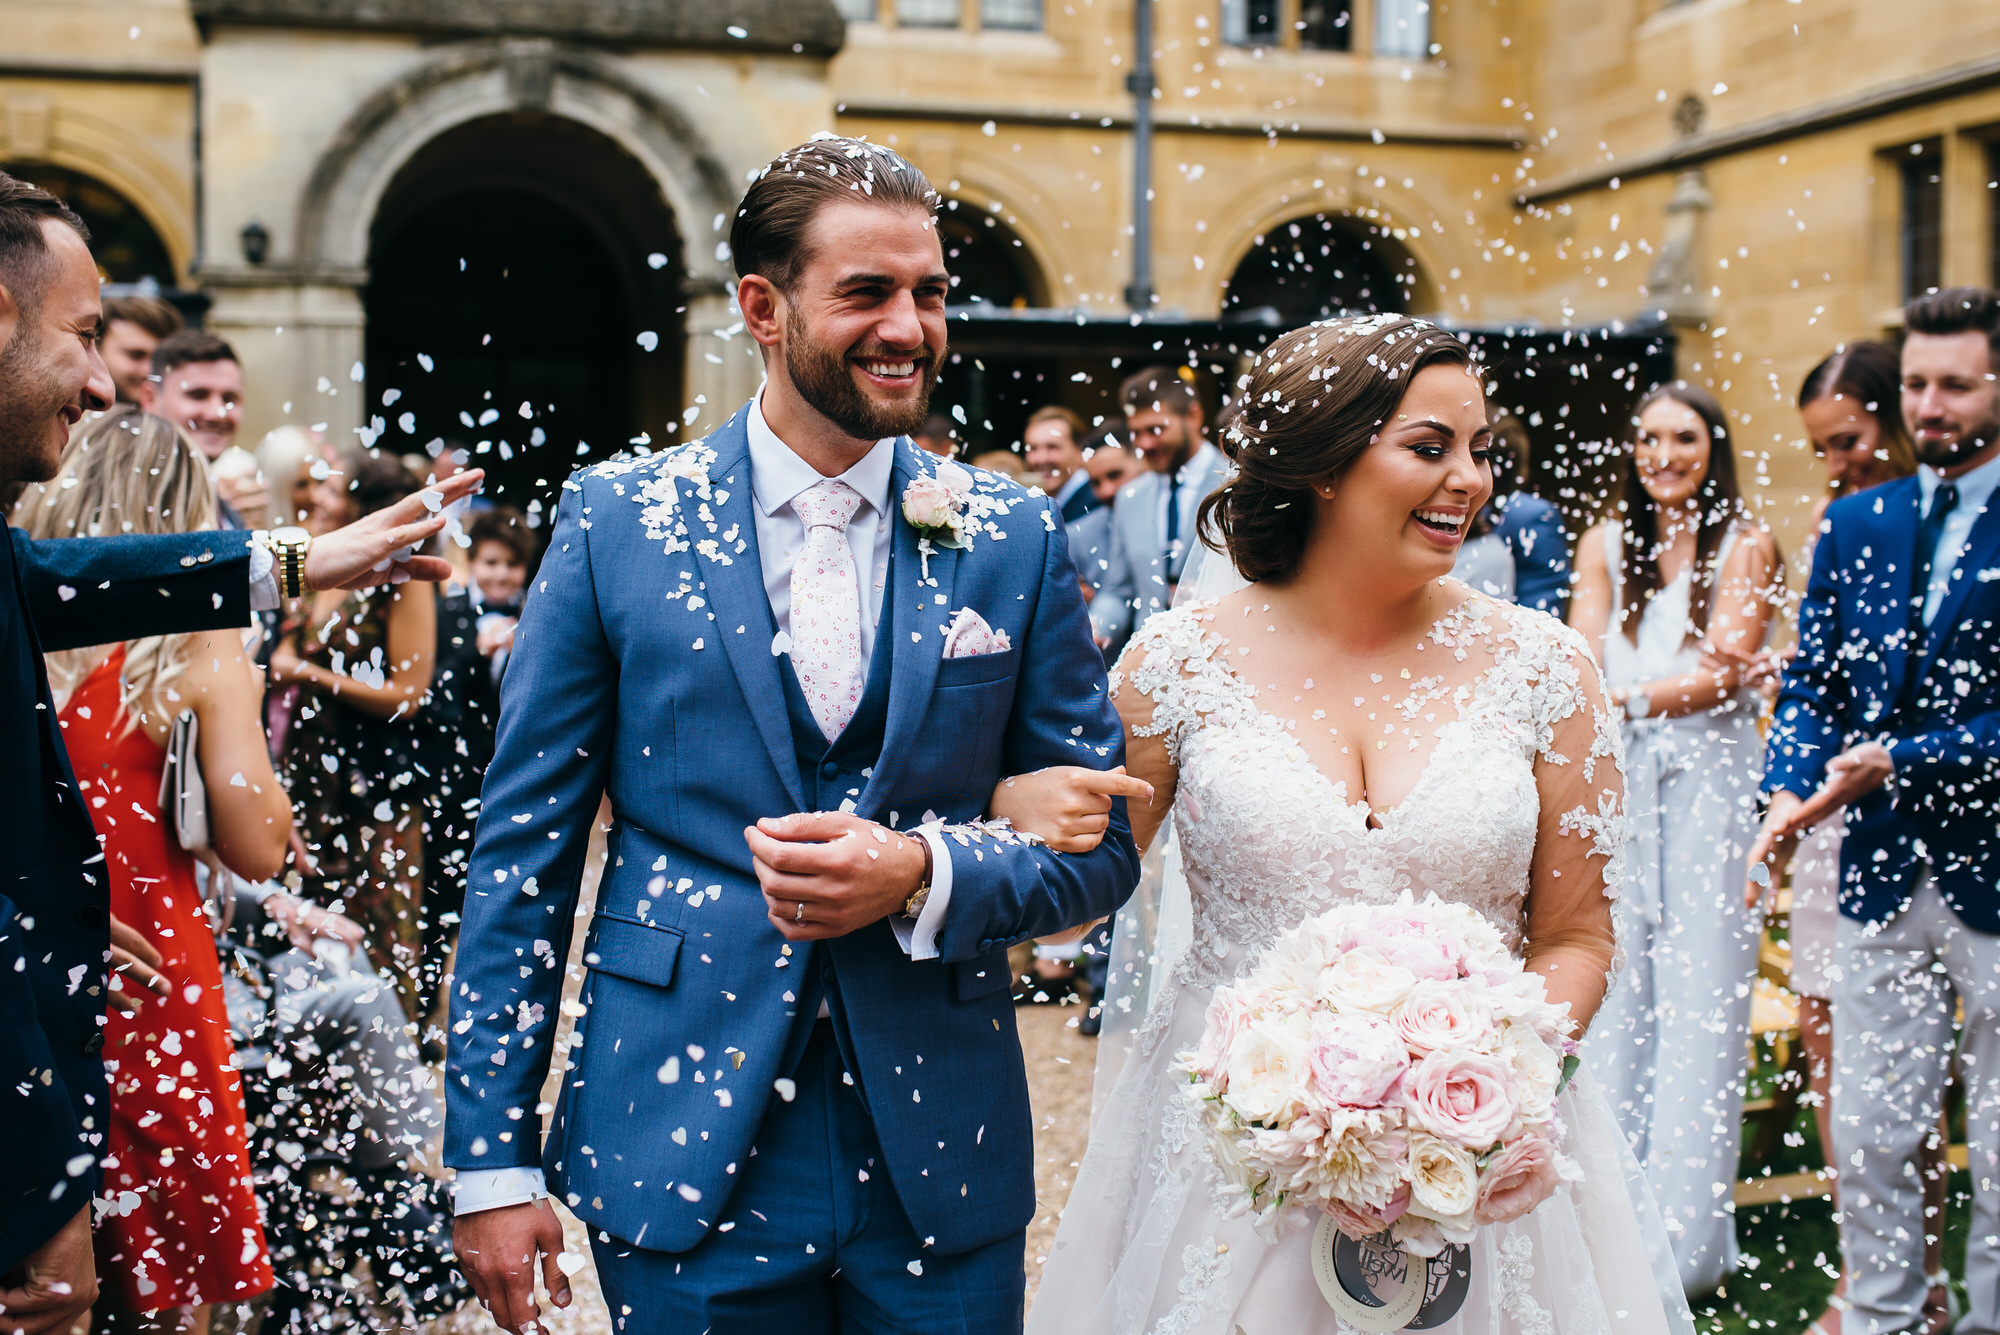 Coombe lodge wedding confetti